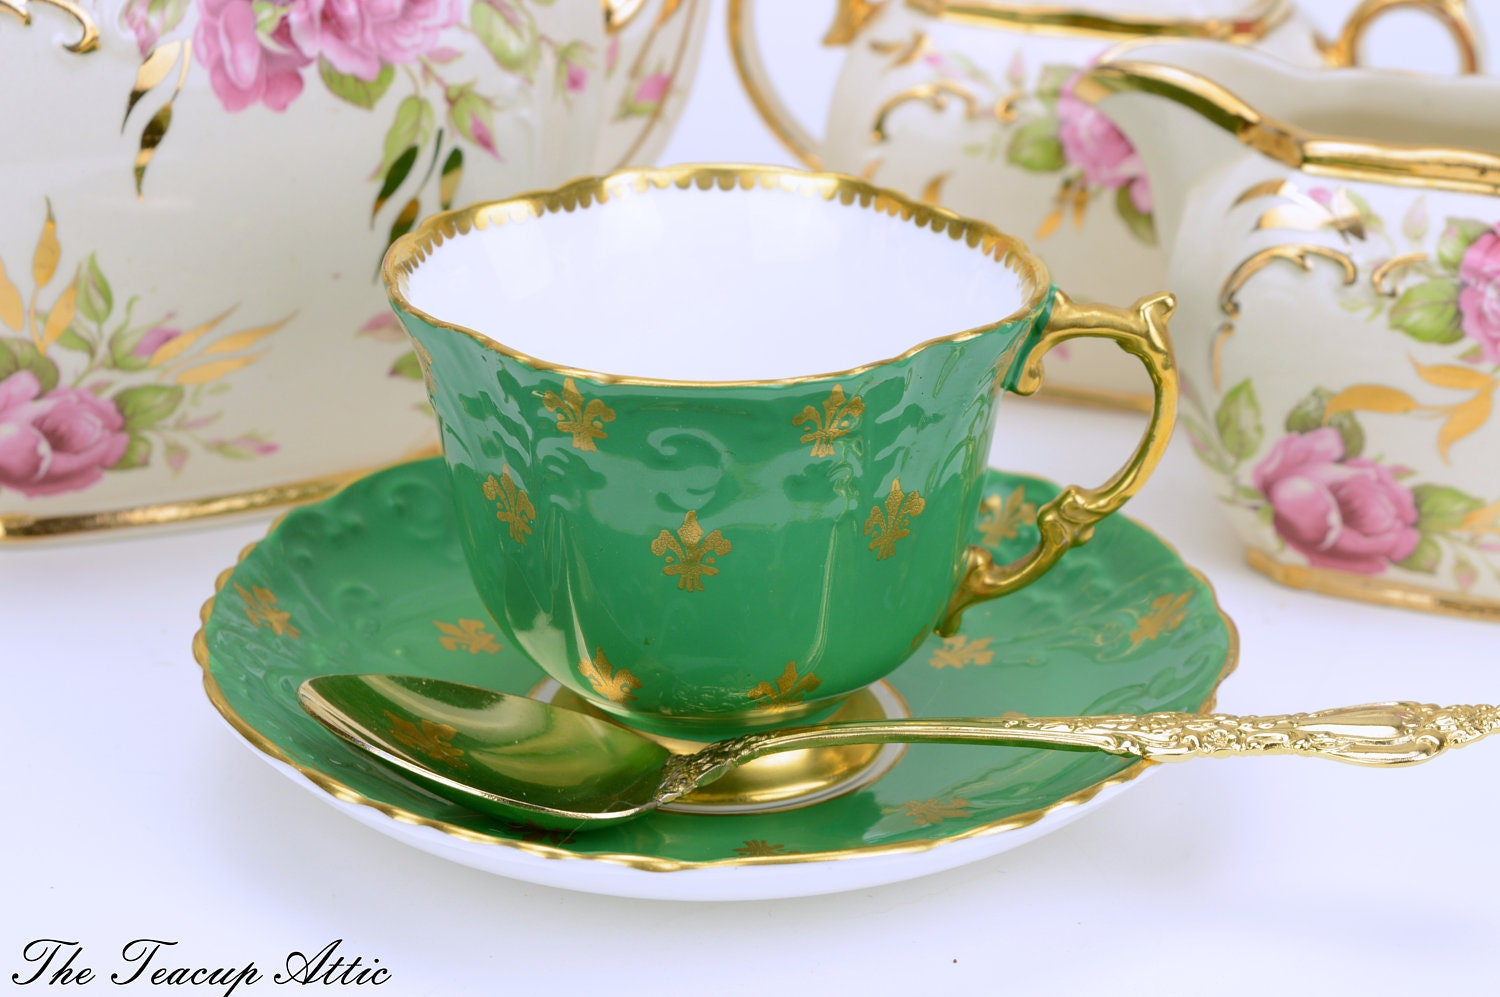 Aynsley Vintage Green Teacup And Saucer Set With Gold Fleur-de-Lys , English Bone China Teacup Set With Fleur De Lis Decoration, ca. 1960